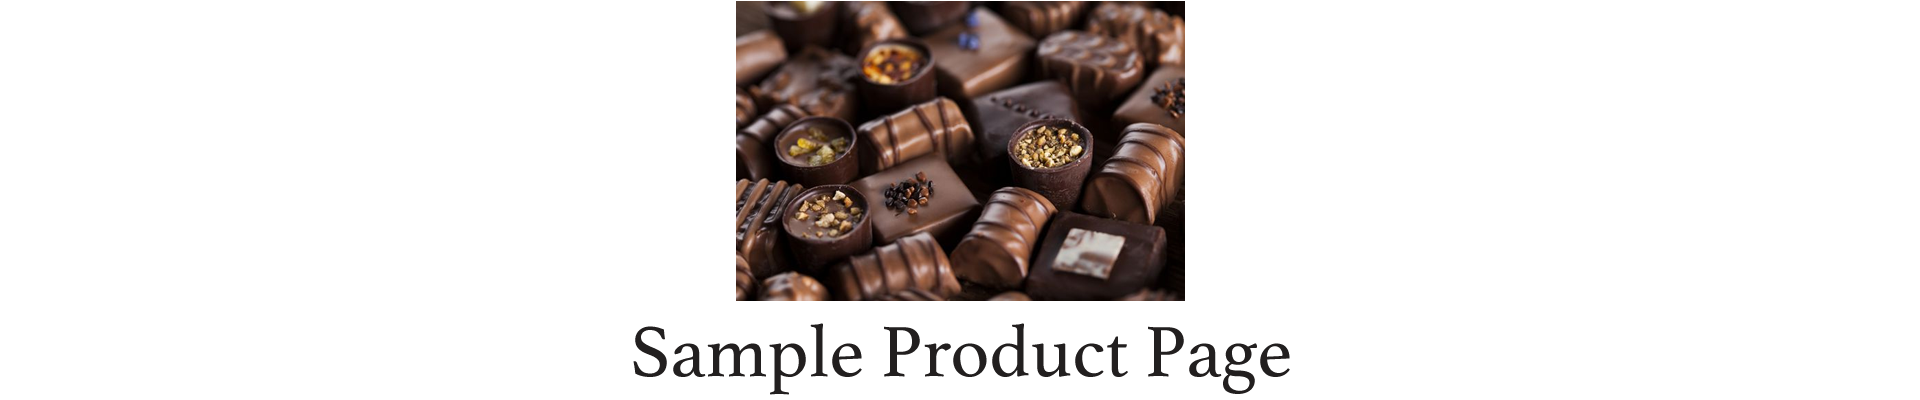 sample-products.png